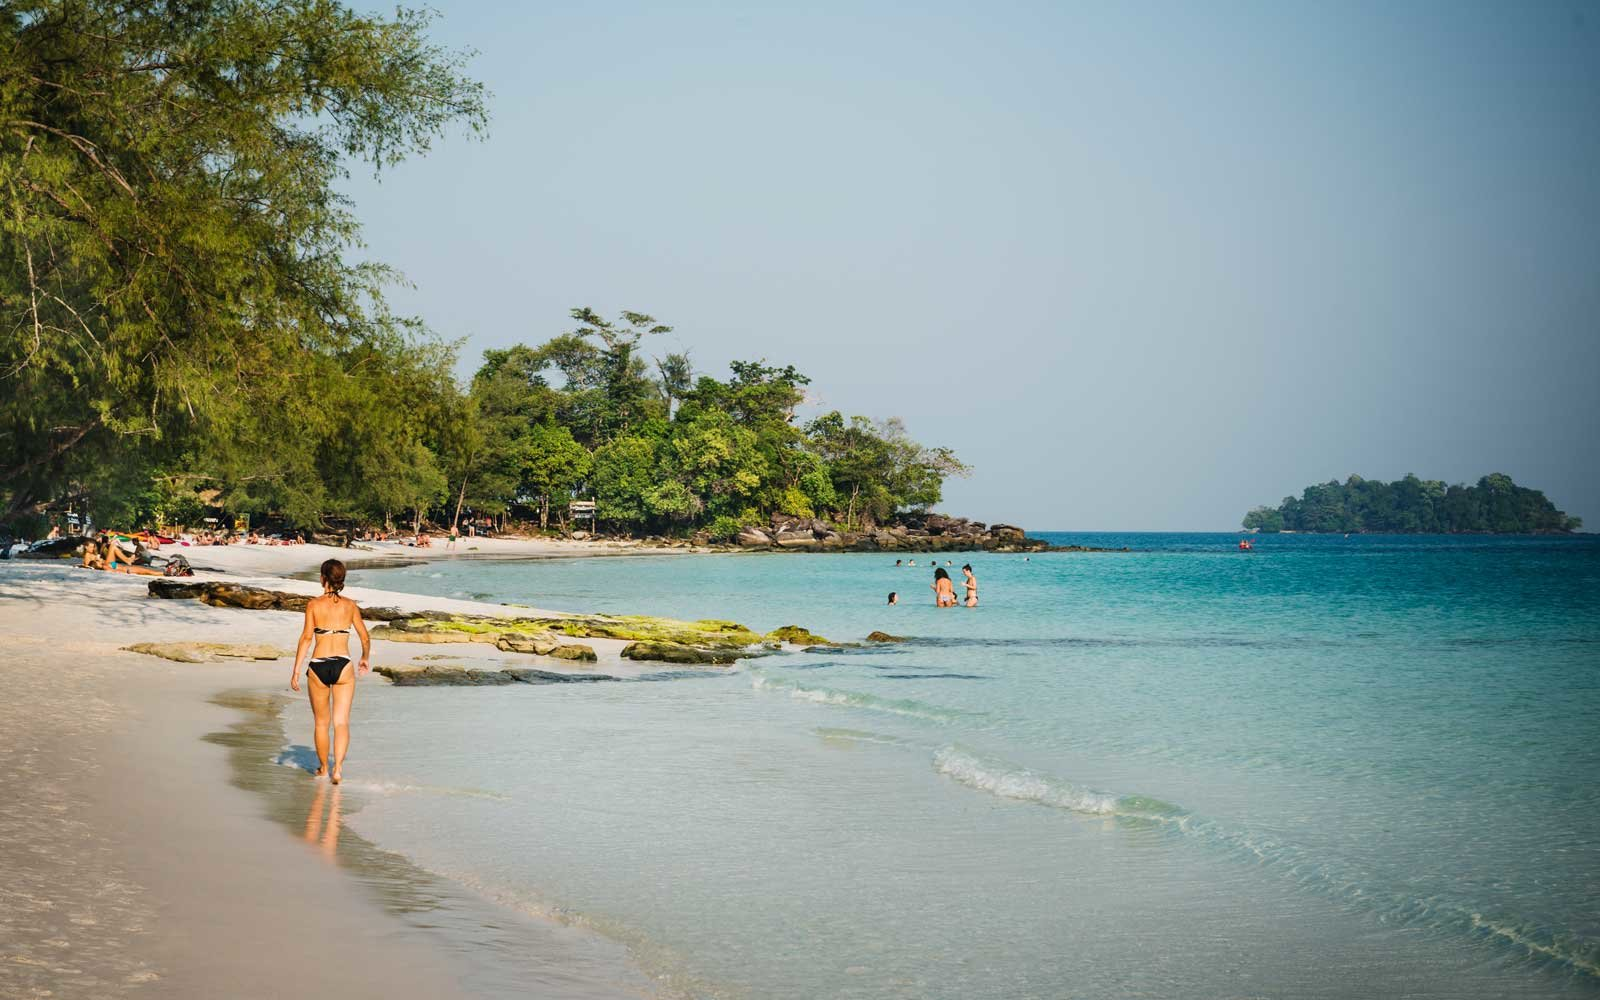 People at the beach in Koh Rong, Sihanoukville, Cambodia, Southeast Asia.